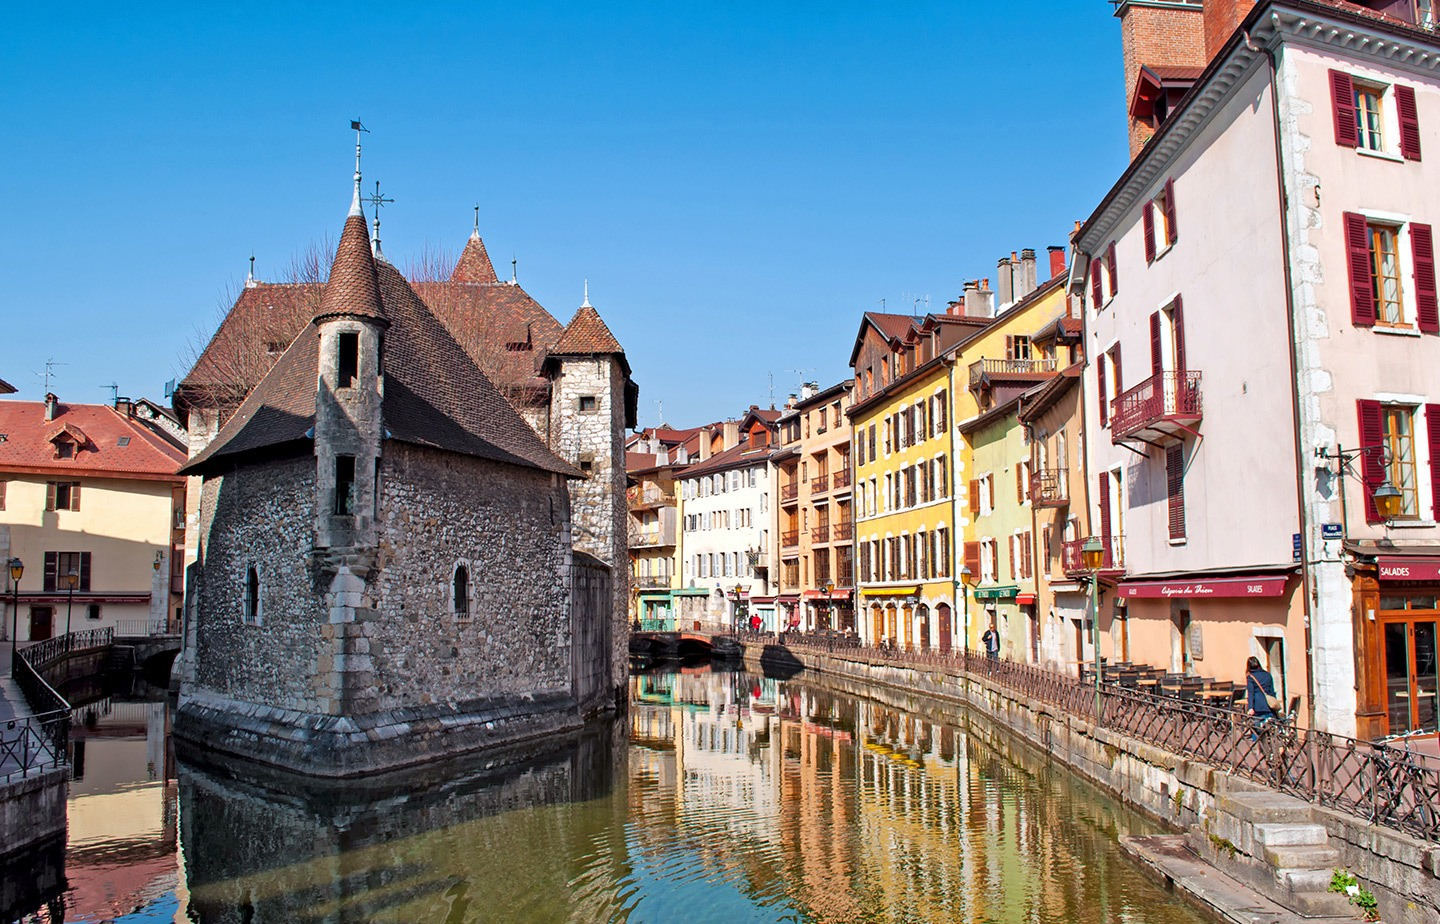 Annecy's canals and old prison